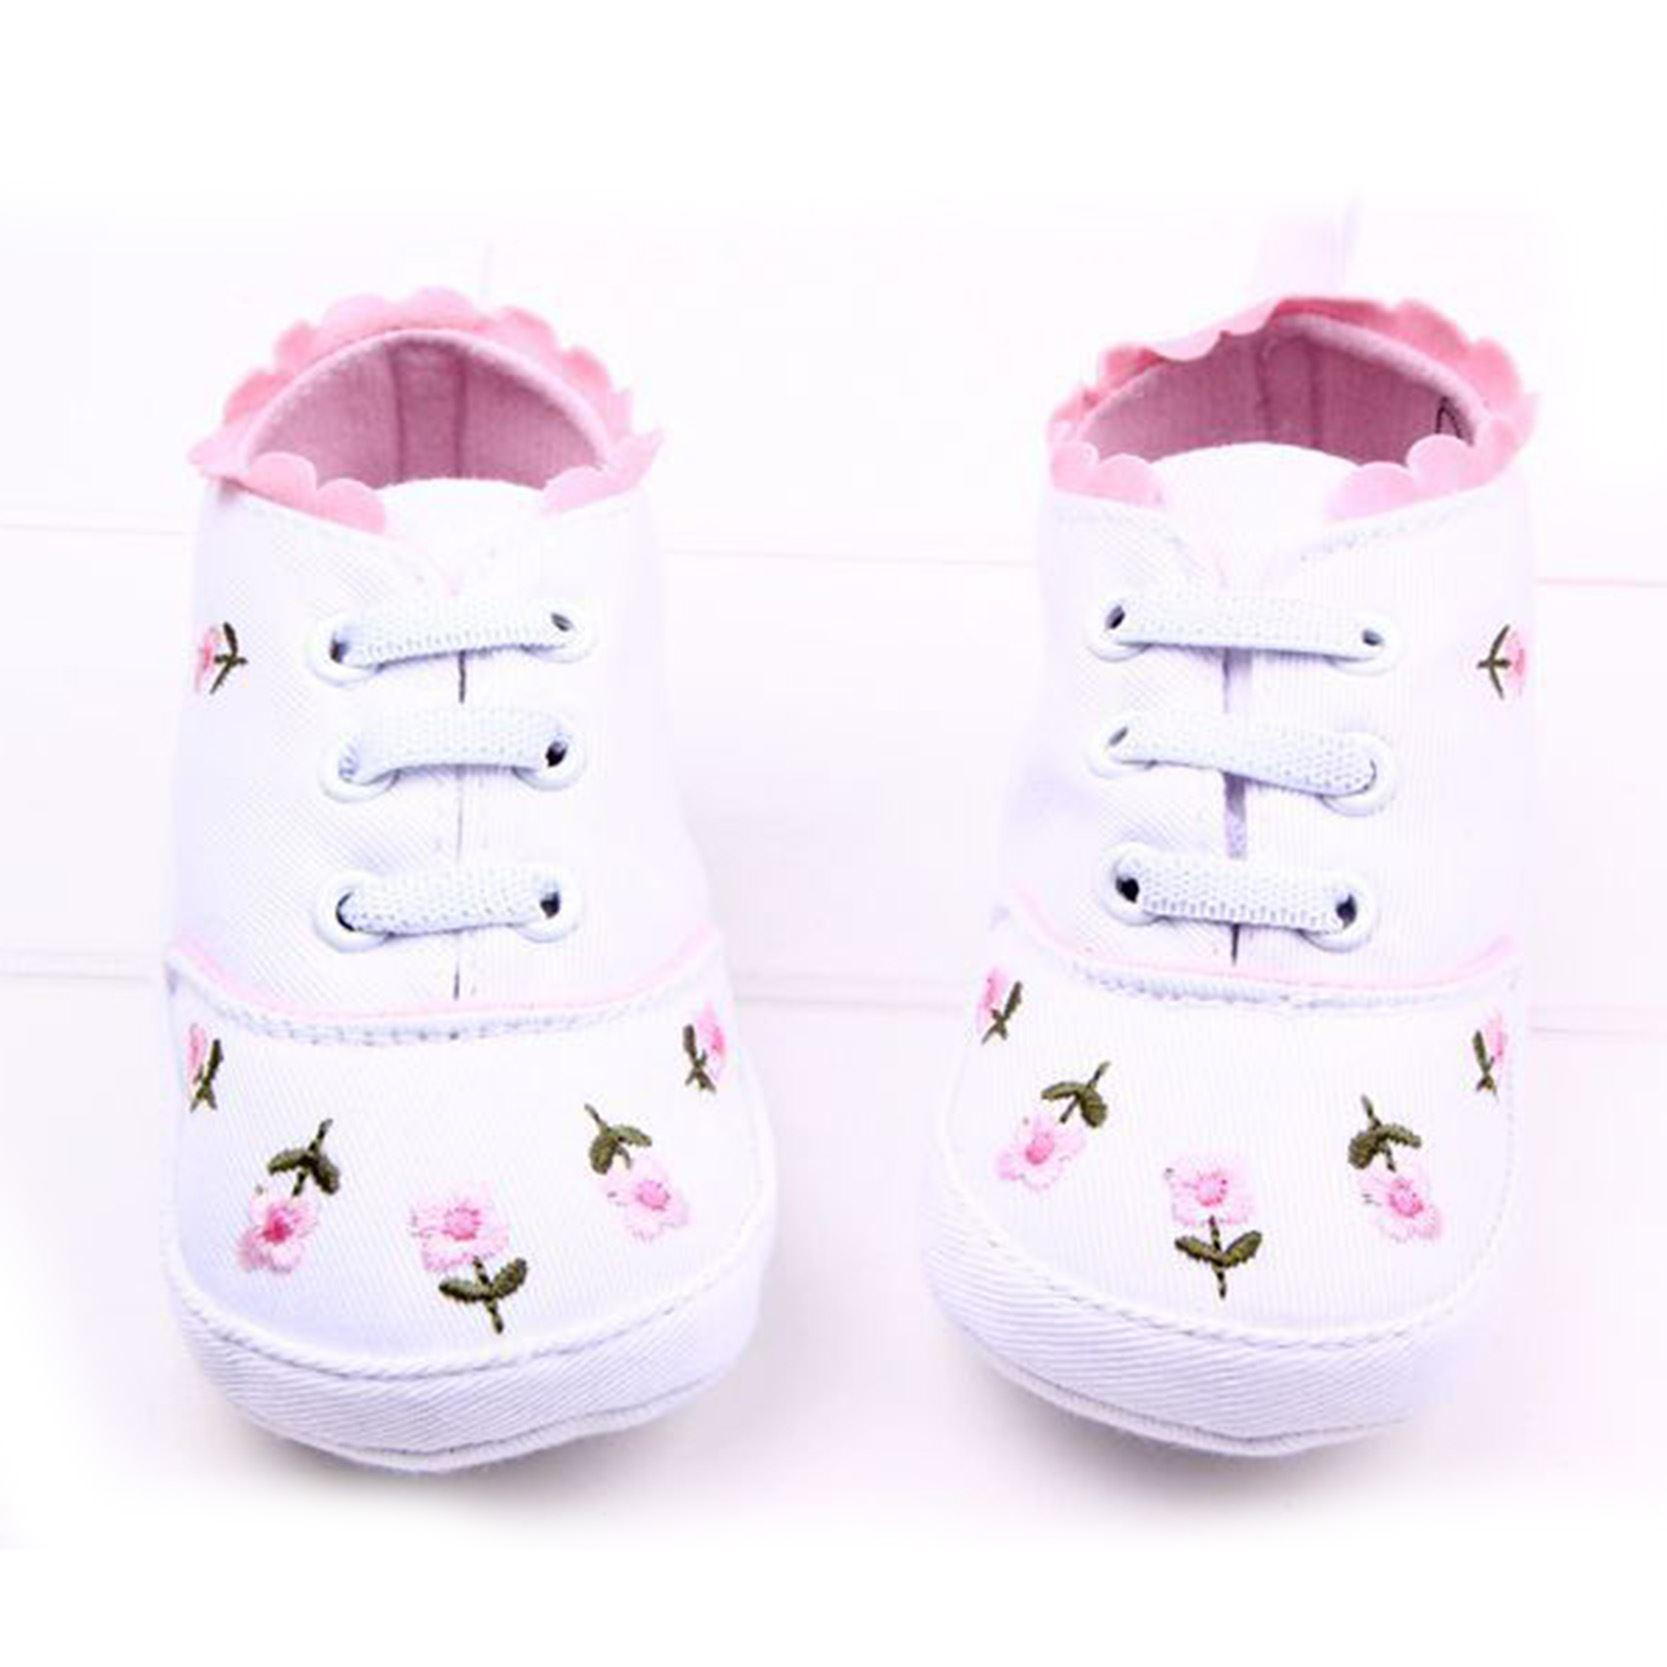 2018 2015 Elegant Baby Shoes Little Lace Embroidered Cotton Shoes